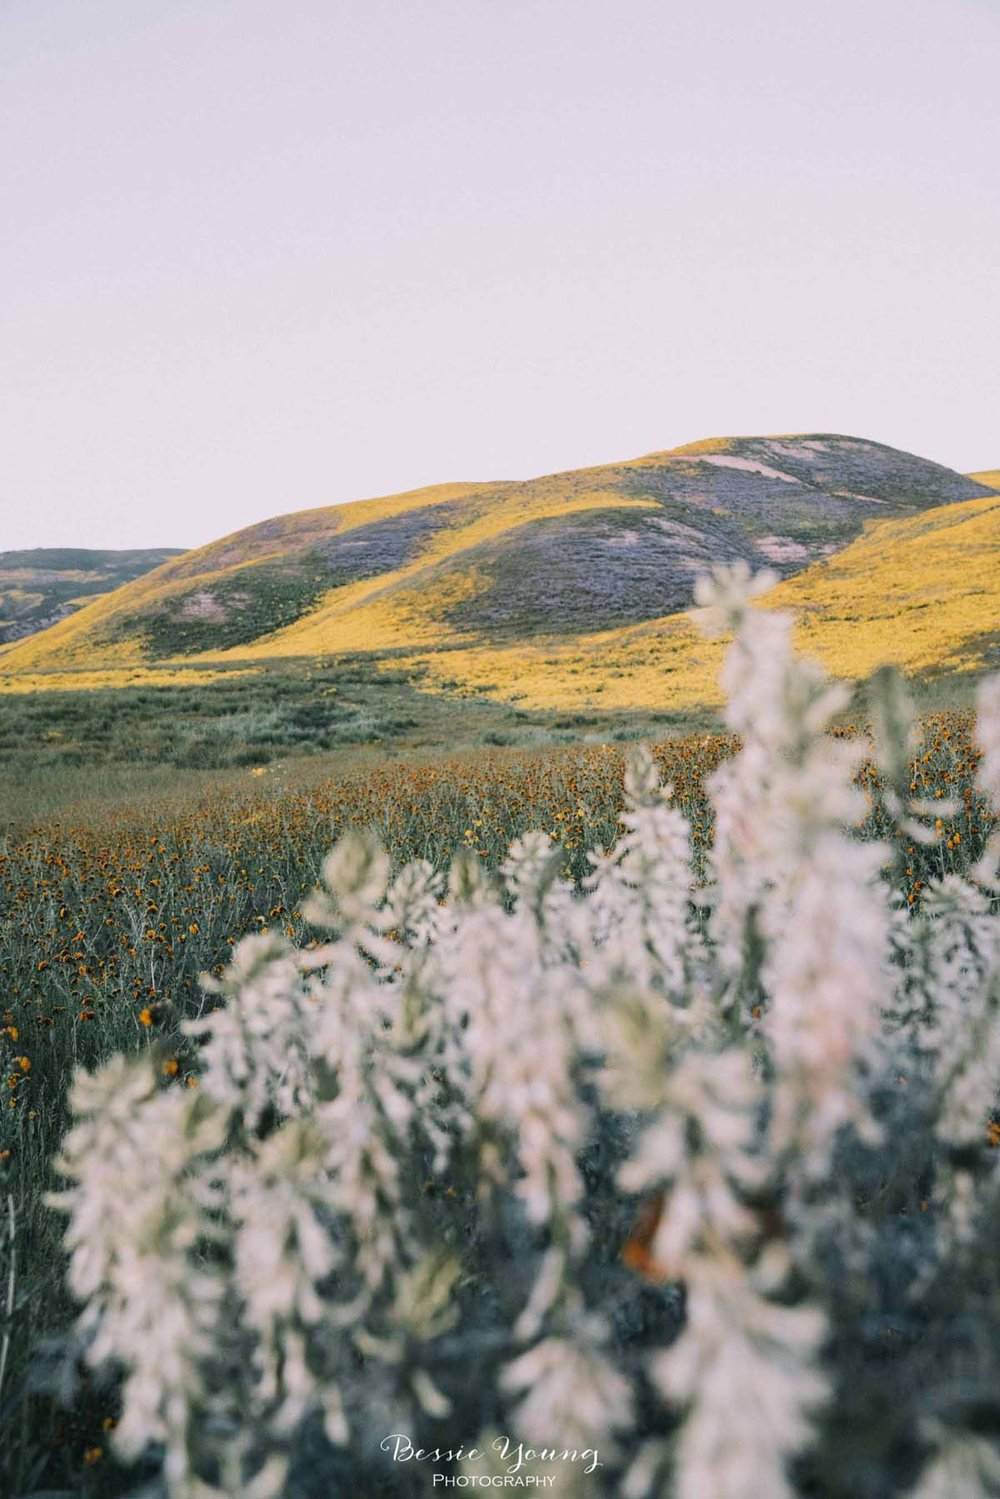 Landscape Photography Fine Art - Photo Contest Winner - Carrizo Plains National Monument Superbloom 2019 by Bessie Young Photography